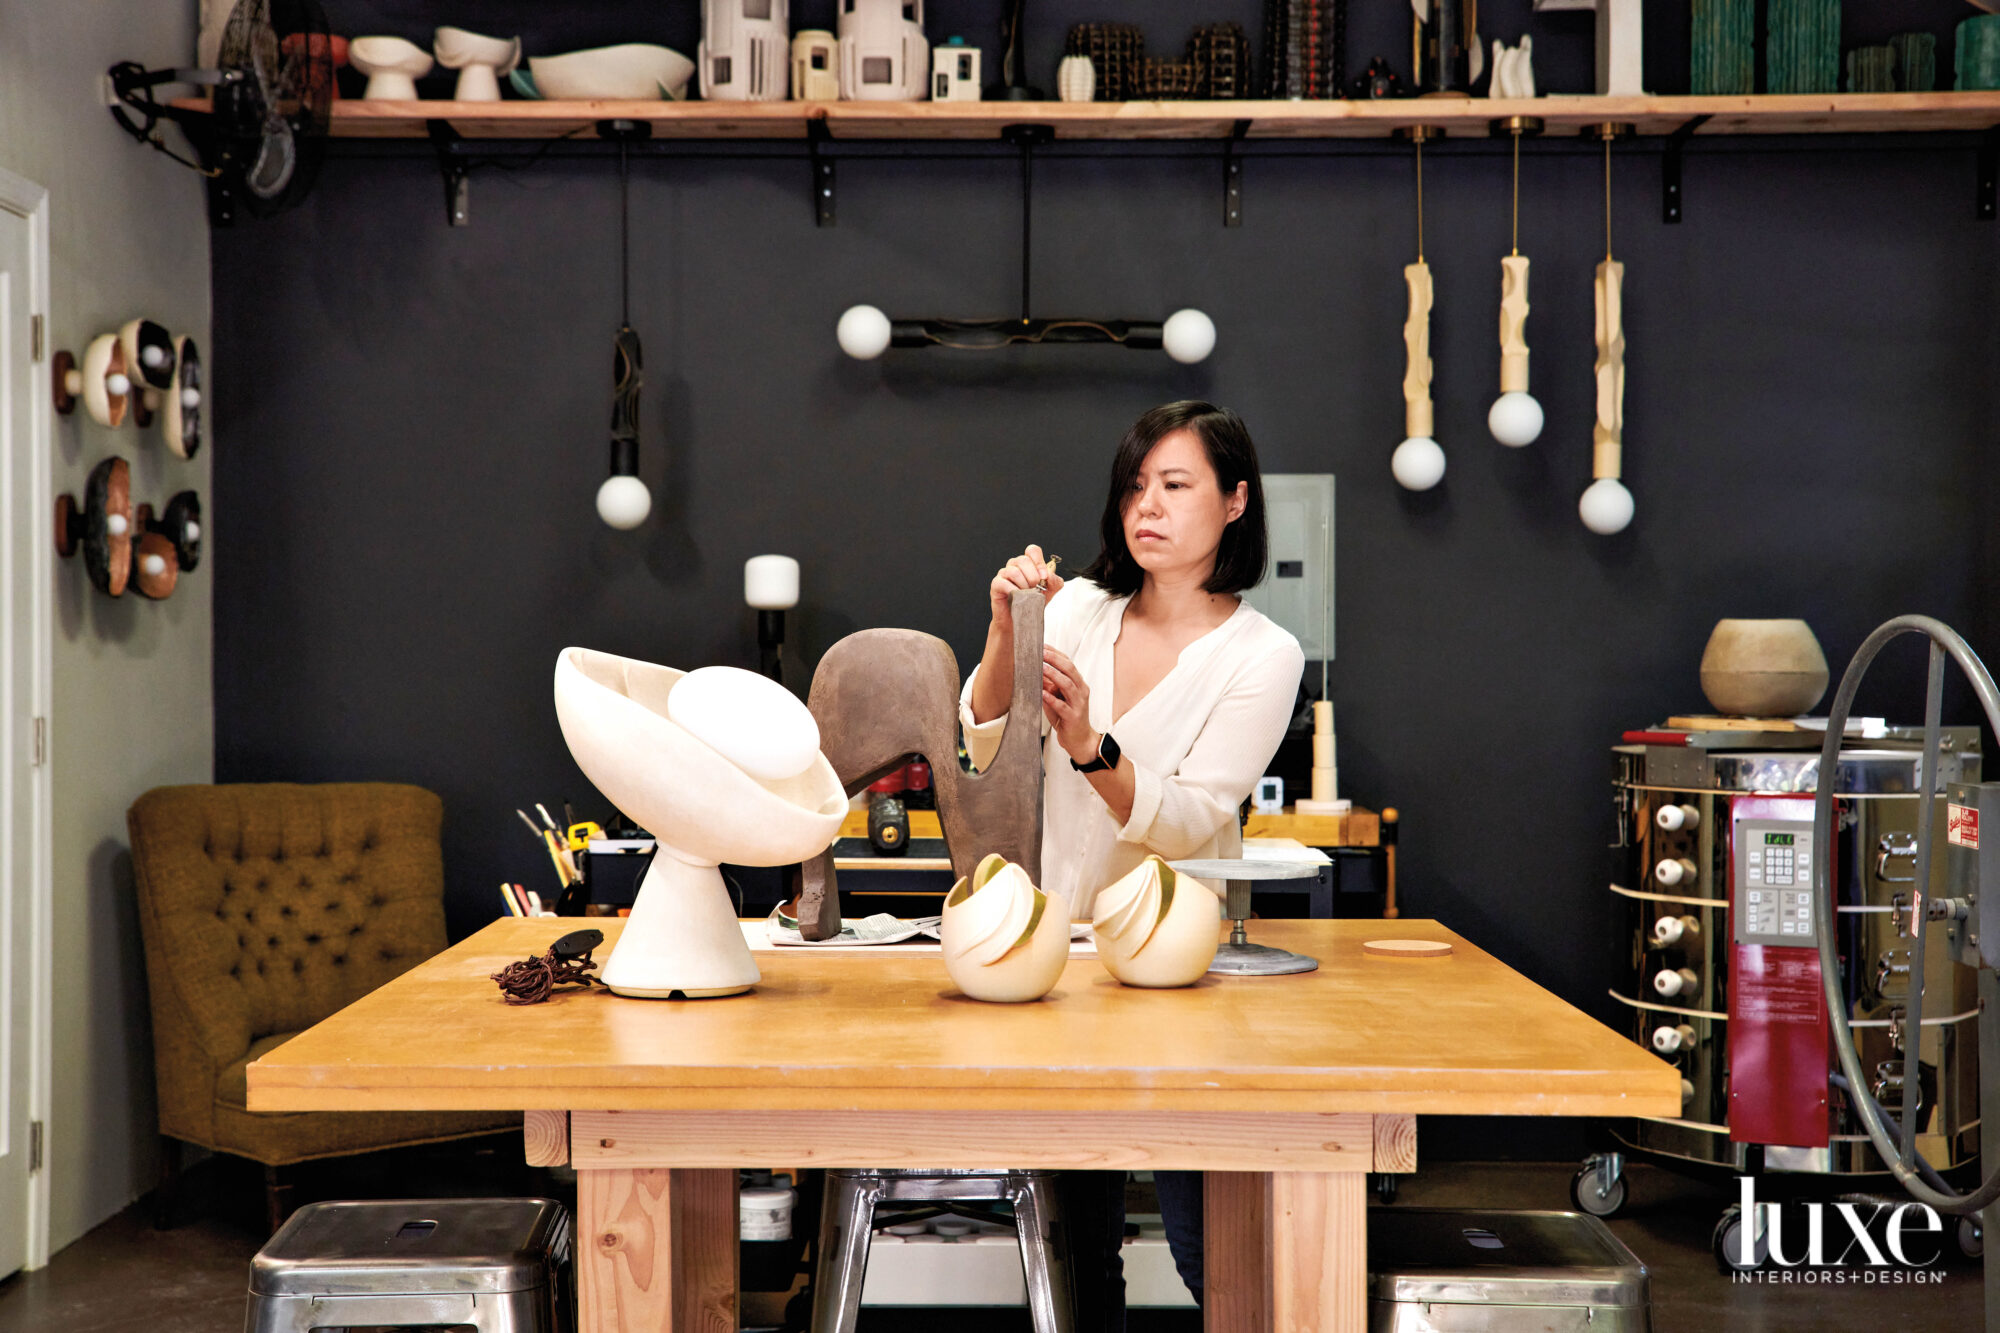 Jenny Poston in studio with lighting collection on a table